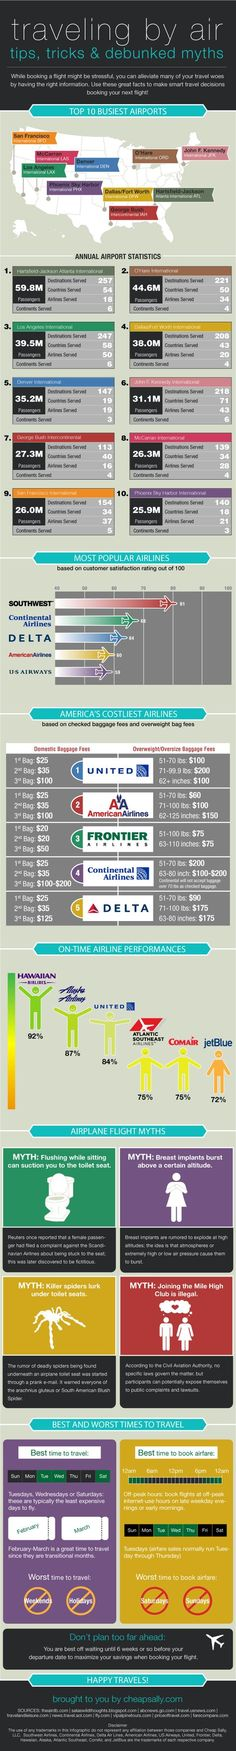 Traveling by Air: Tips, Tricks, and Debunked Myths[INFOGRAPHIC]